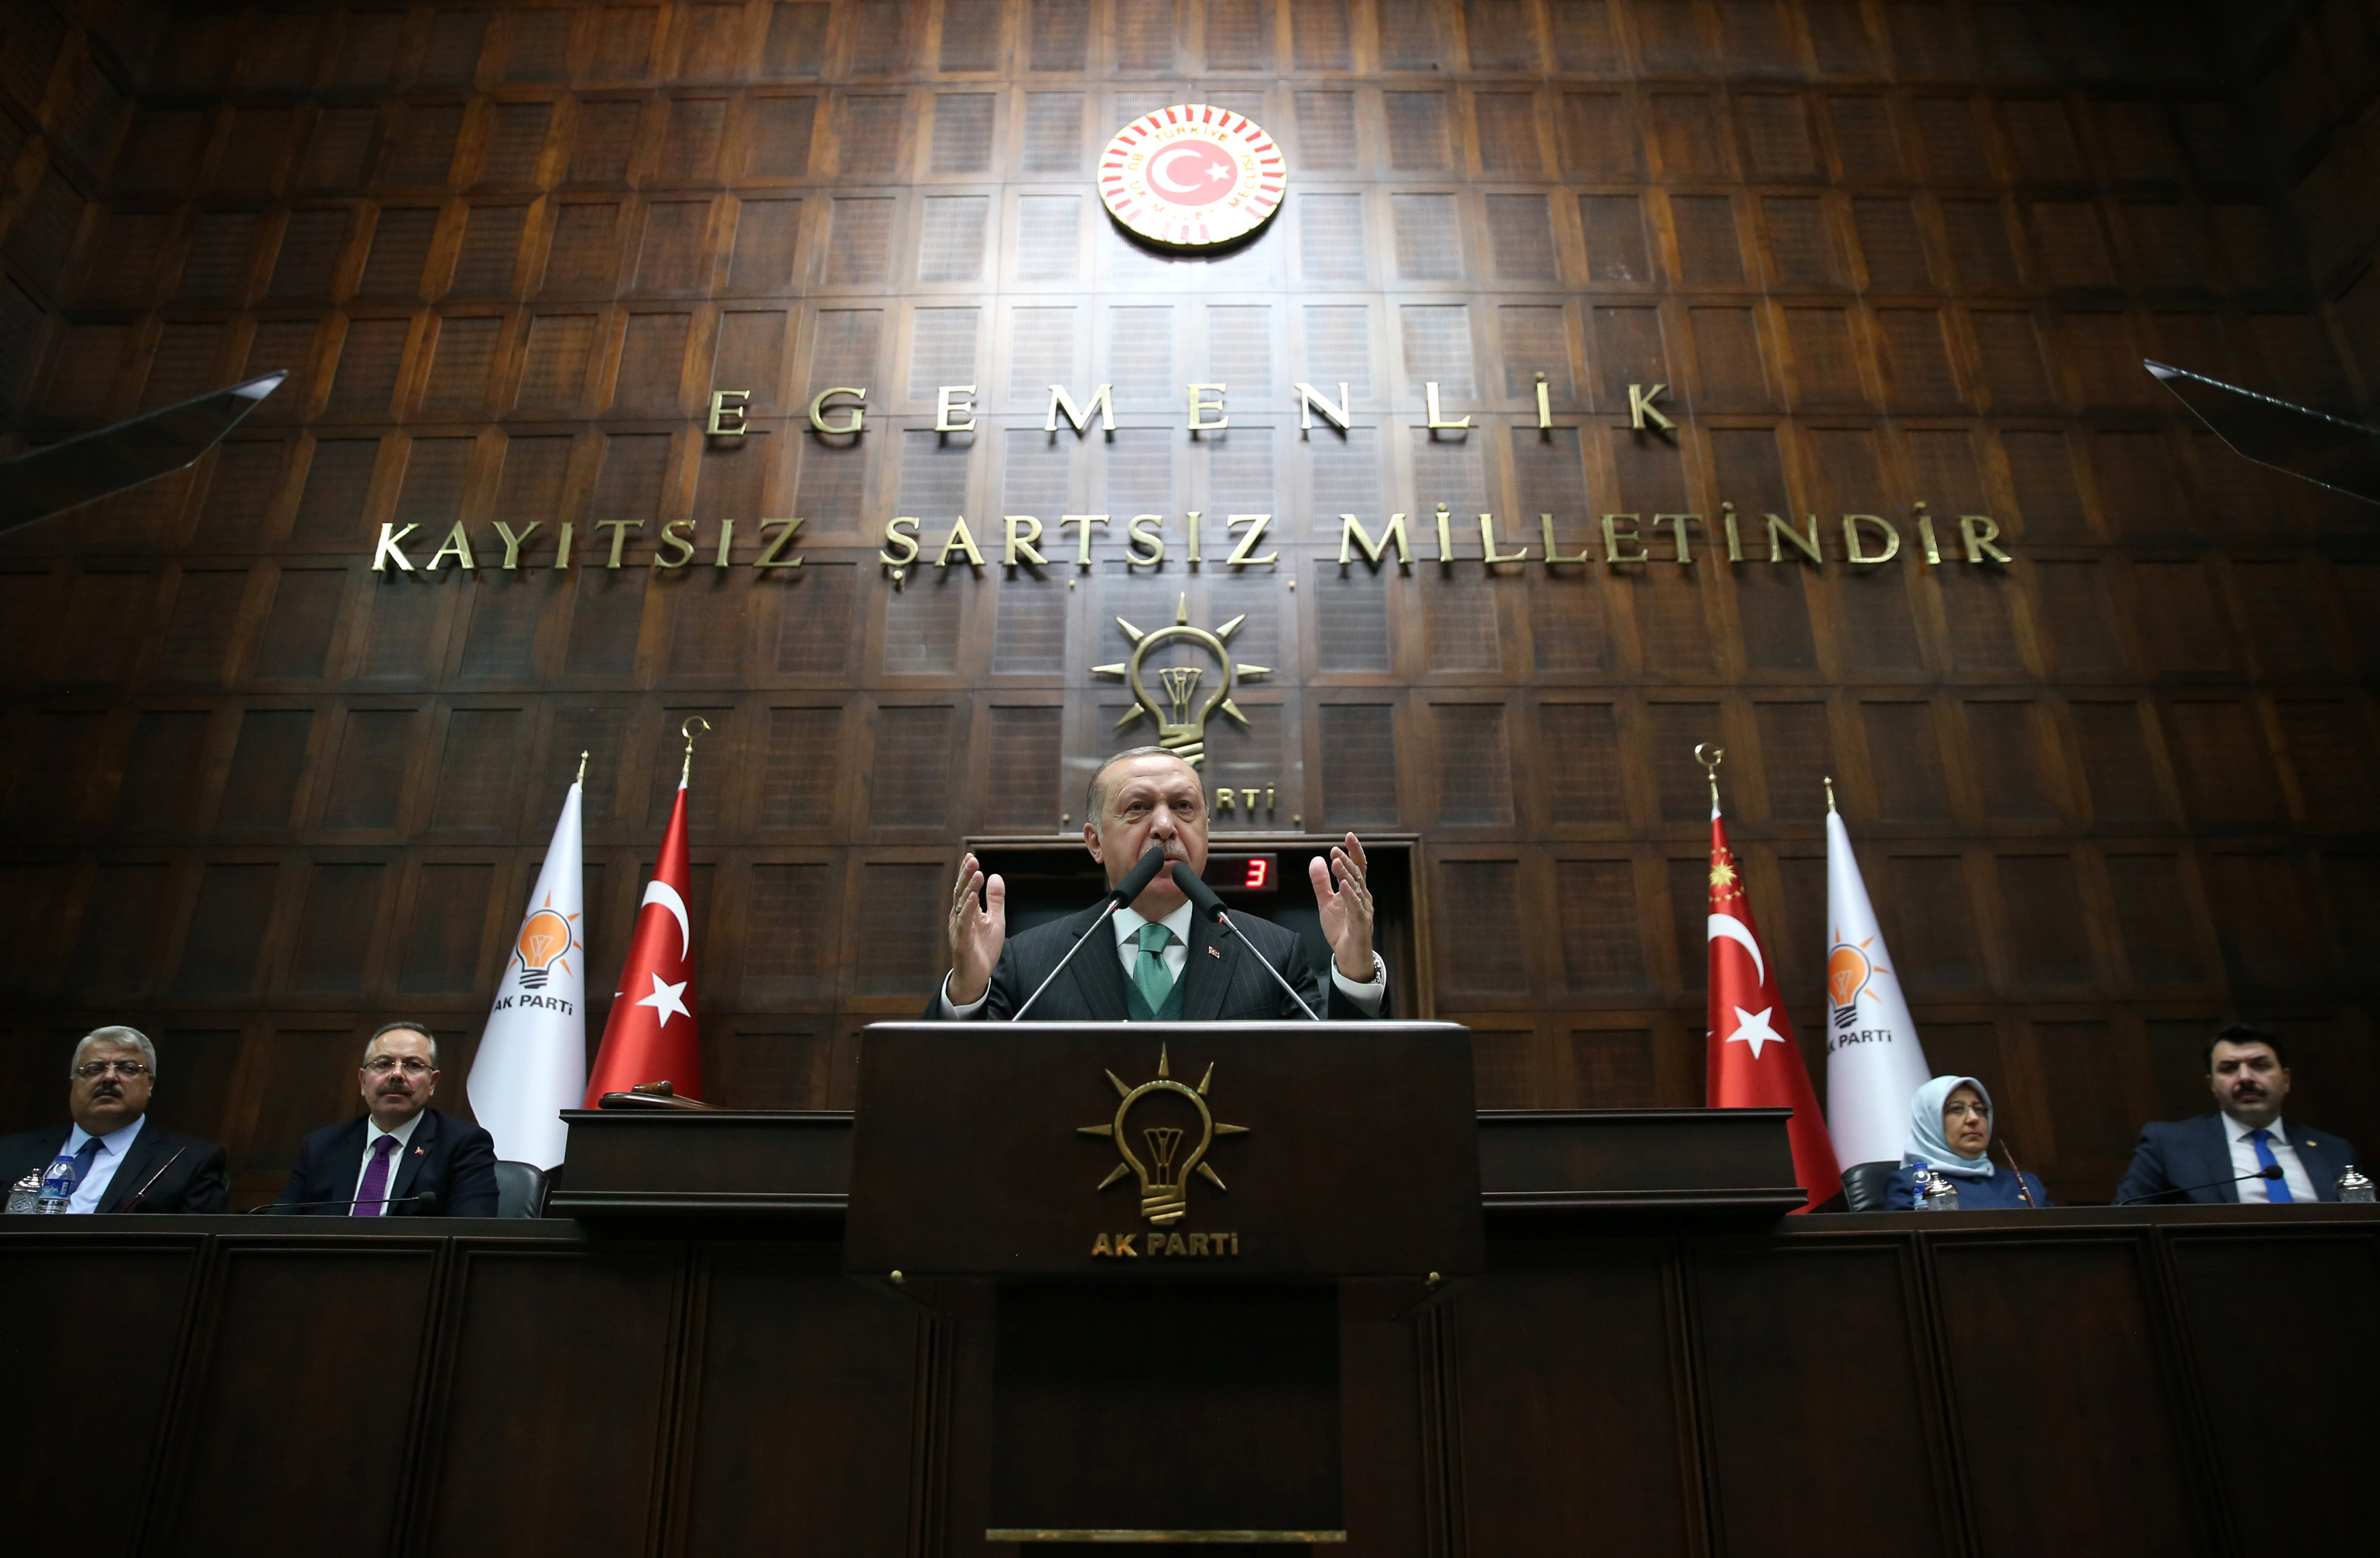 Turkish President Tayyip Erdogan addresses members of parliament from his ruling AK Party (AKP) during a meeting at the Turkish parliament in Ankara, Turkey, February 6, 2018.